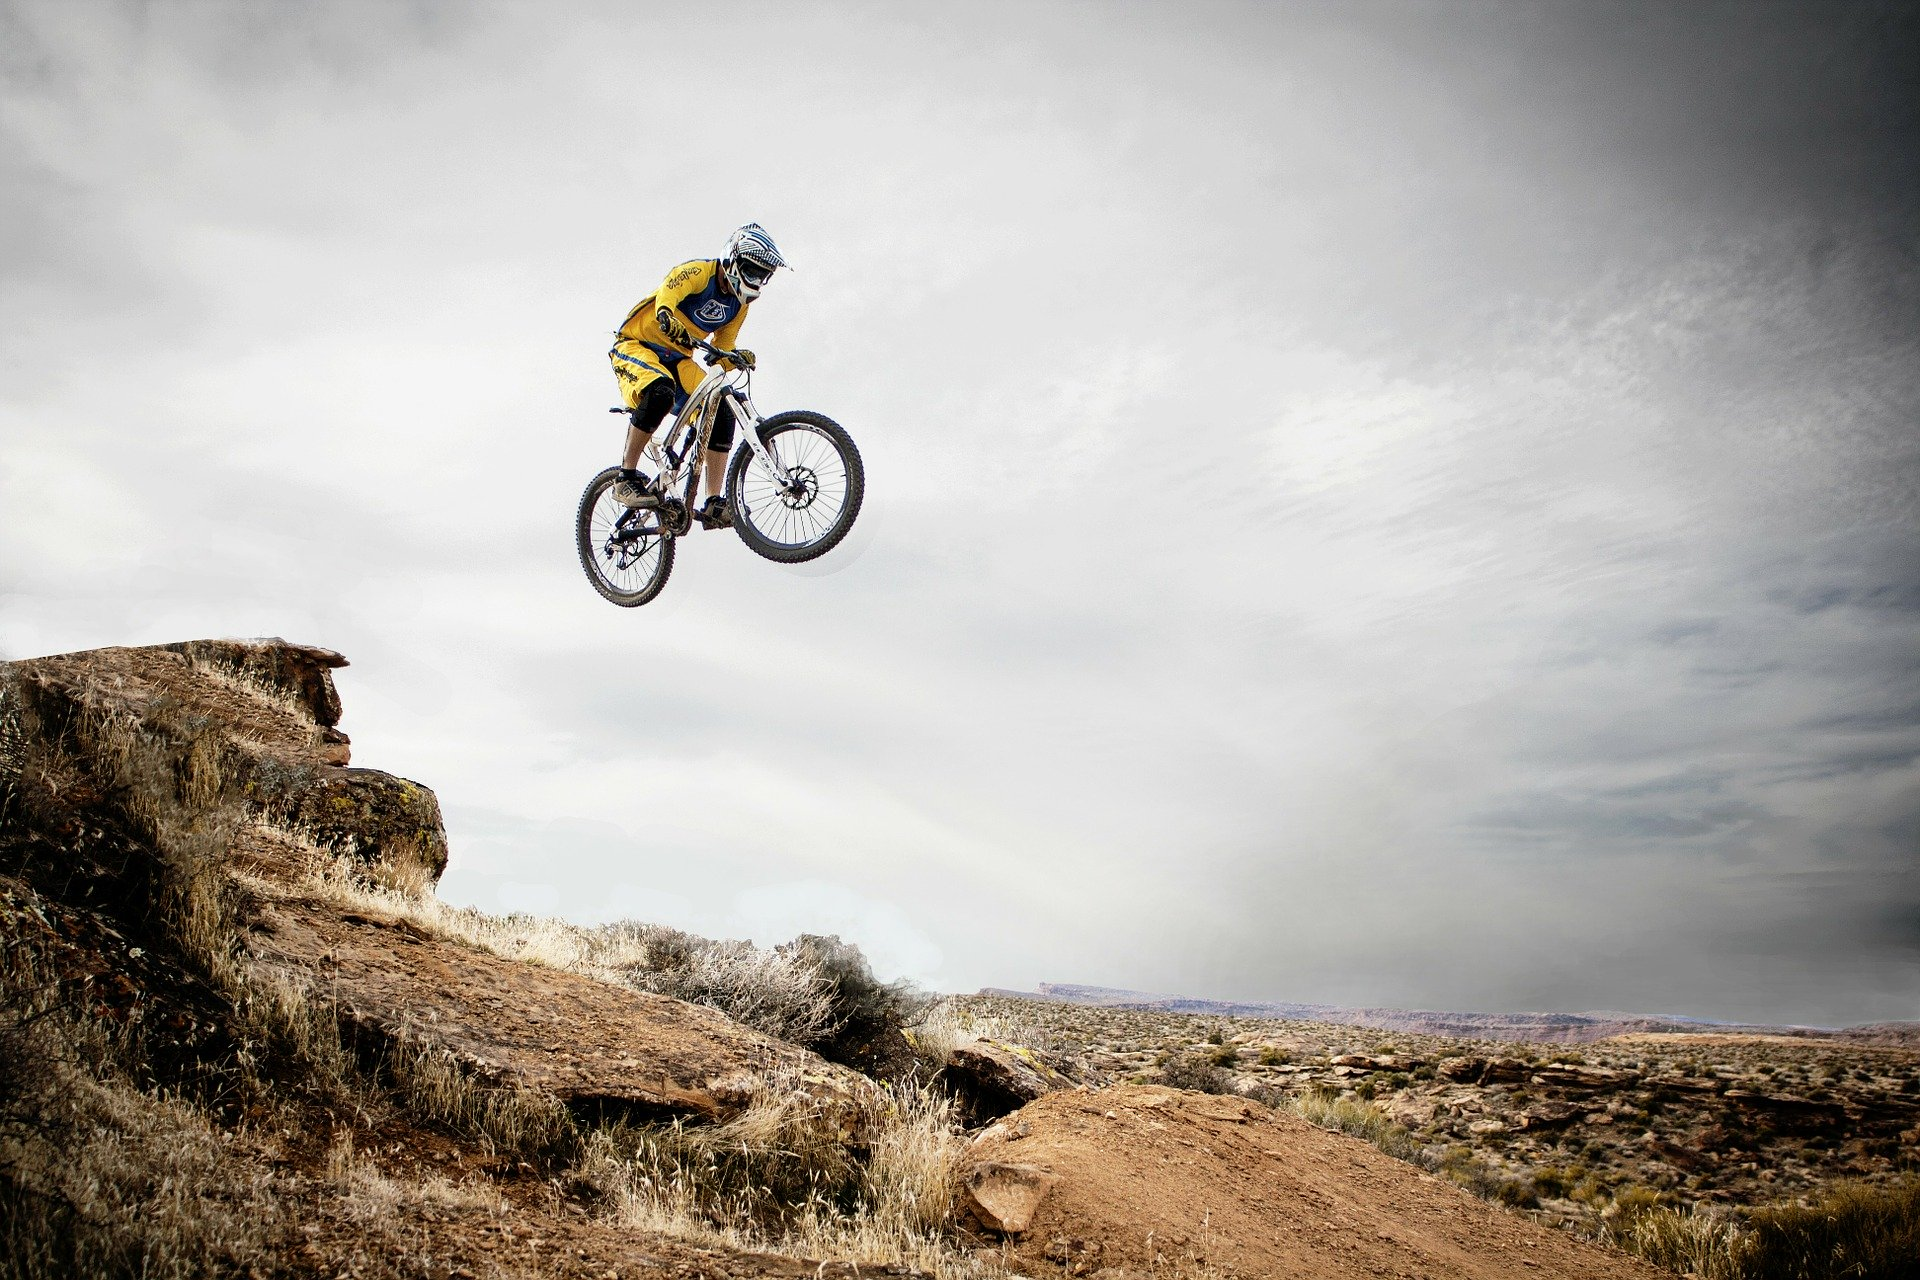 Types of Extreme Sports Based on your Athletic Background